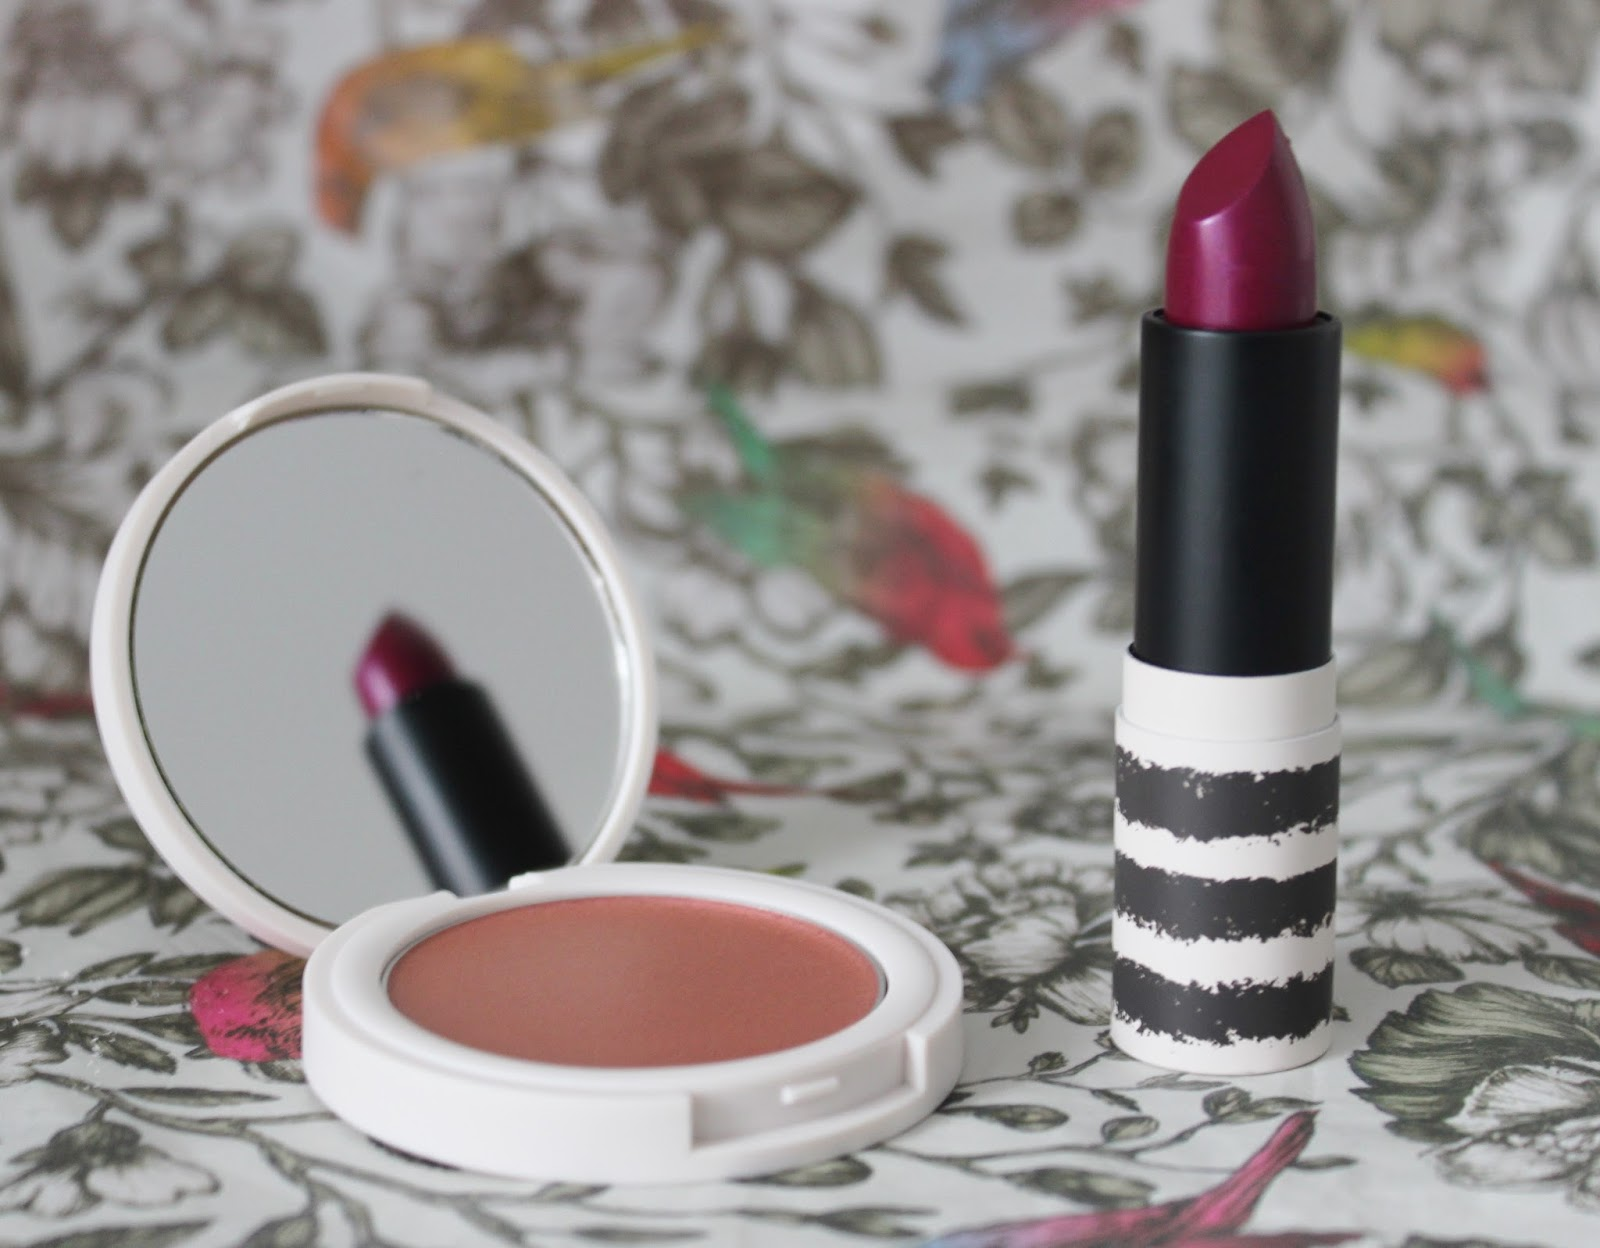 Topshop metallic makeup - Drive lipstick and pulse blusher